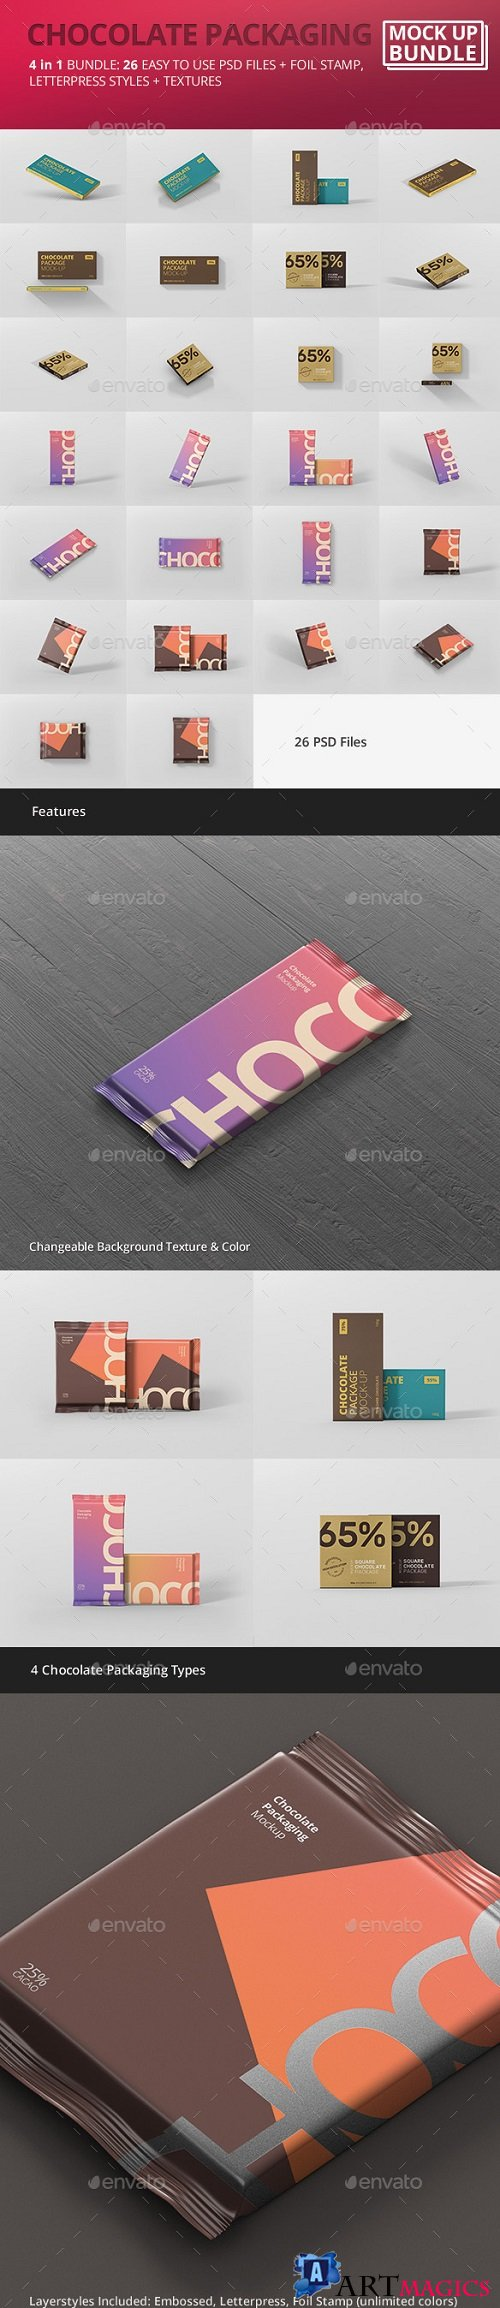 Chocolate Packaging Mockup Bundle 21226686